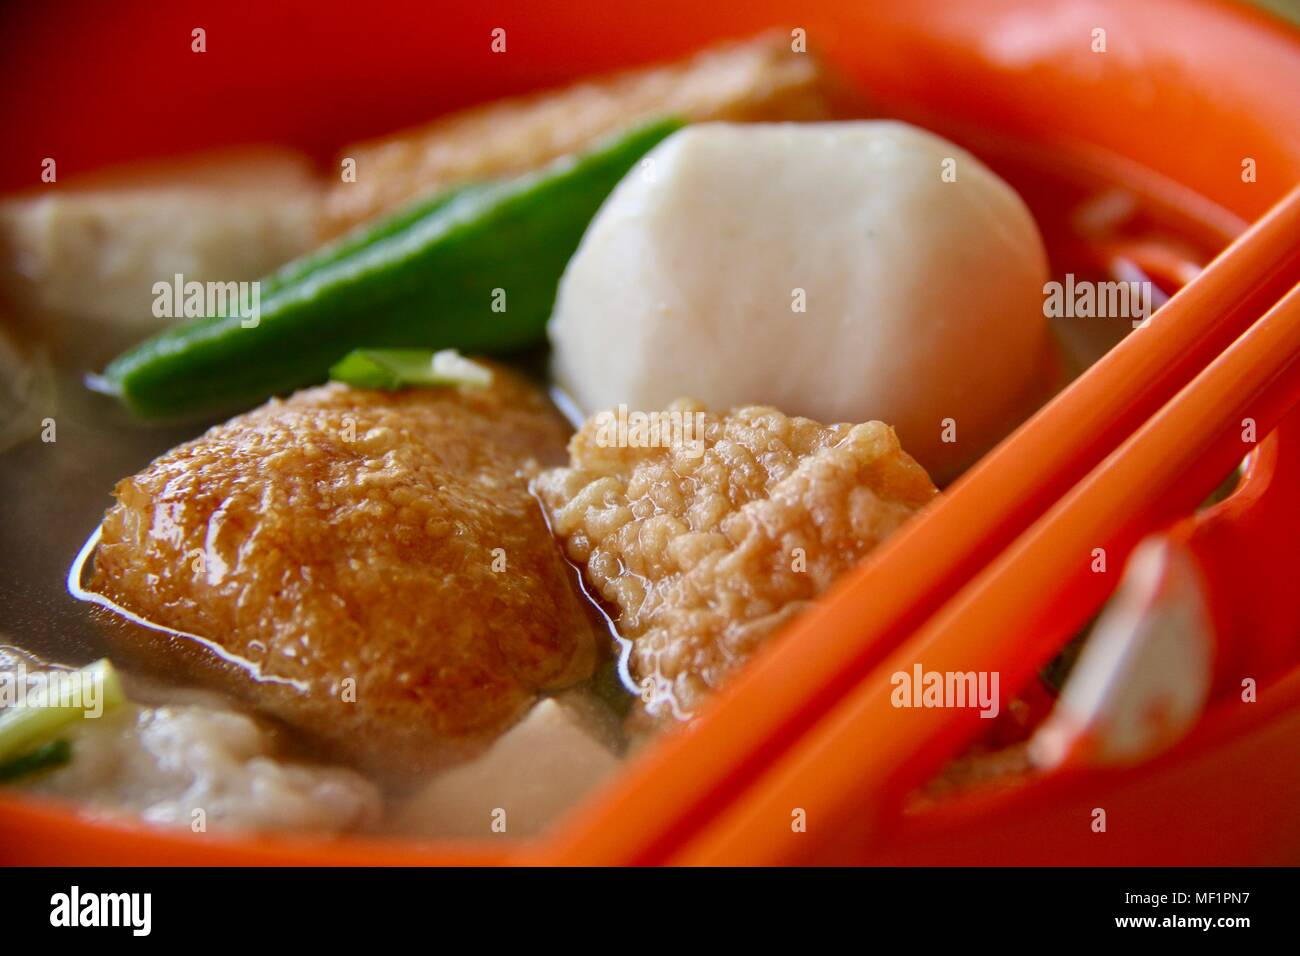 Yong Tau Foo. Chinese dish of stuffed bean curd, vegetable and fish cakes in hot broth. - Stock Image